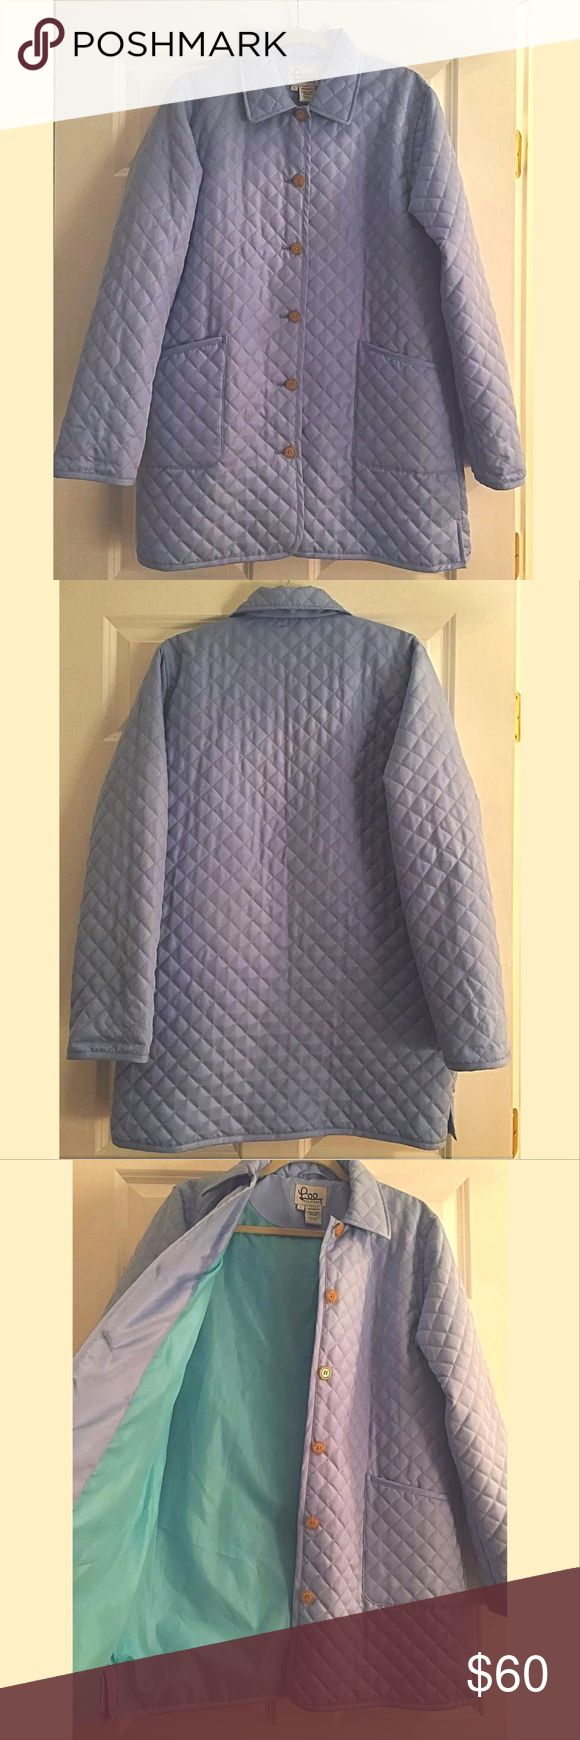 """Lilly Pulitzer Powder Blue Quilted Jacket Lilly Pulitzer quilted coat. Lovely powder blue color. Pristine condition. Absolutely no signs of wear. Size L. Bust armpit to armpit 22"""", Length shoulder to hemline 33"""", Sleeve shoulder to cuff 26"""". Lilly Pulitzer Jackets & Coats Puffers"""